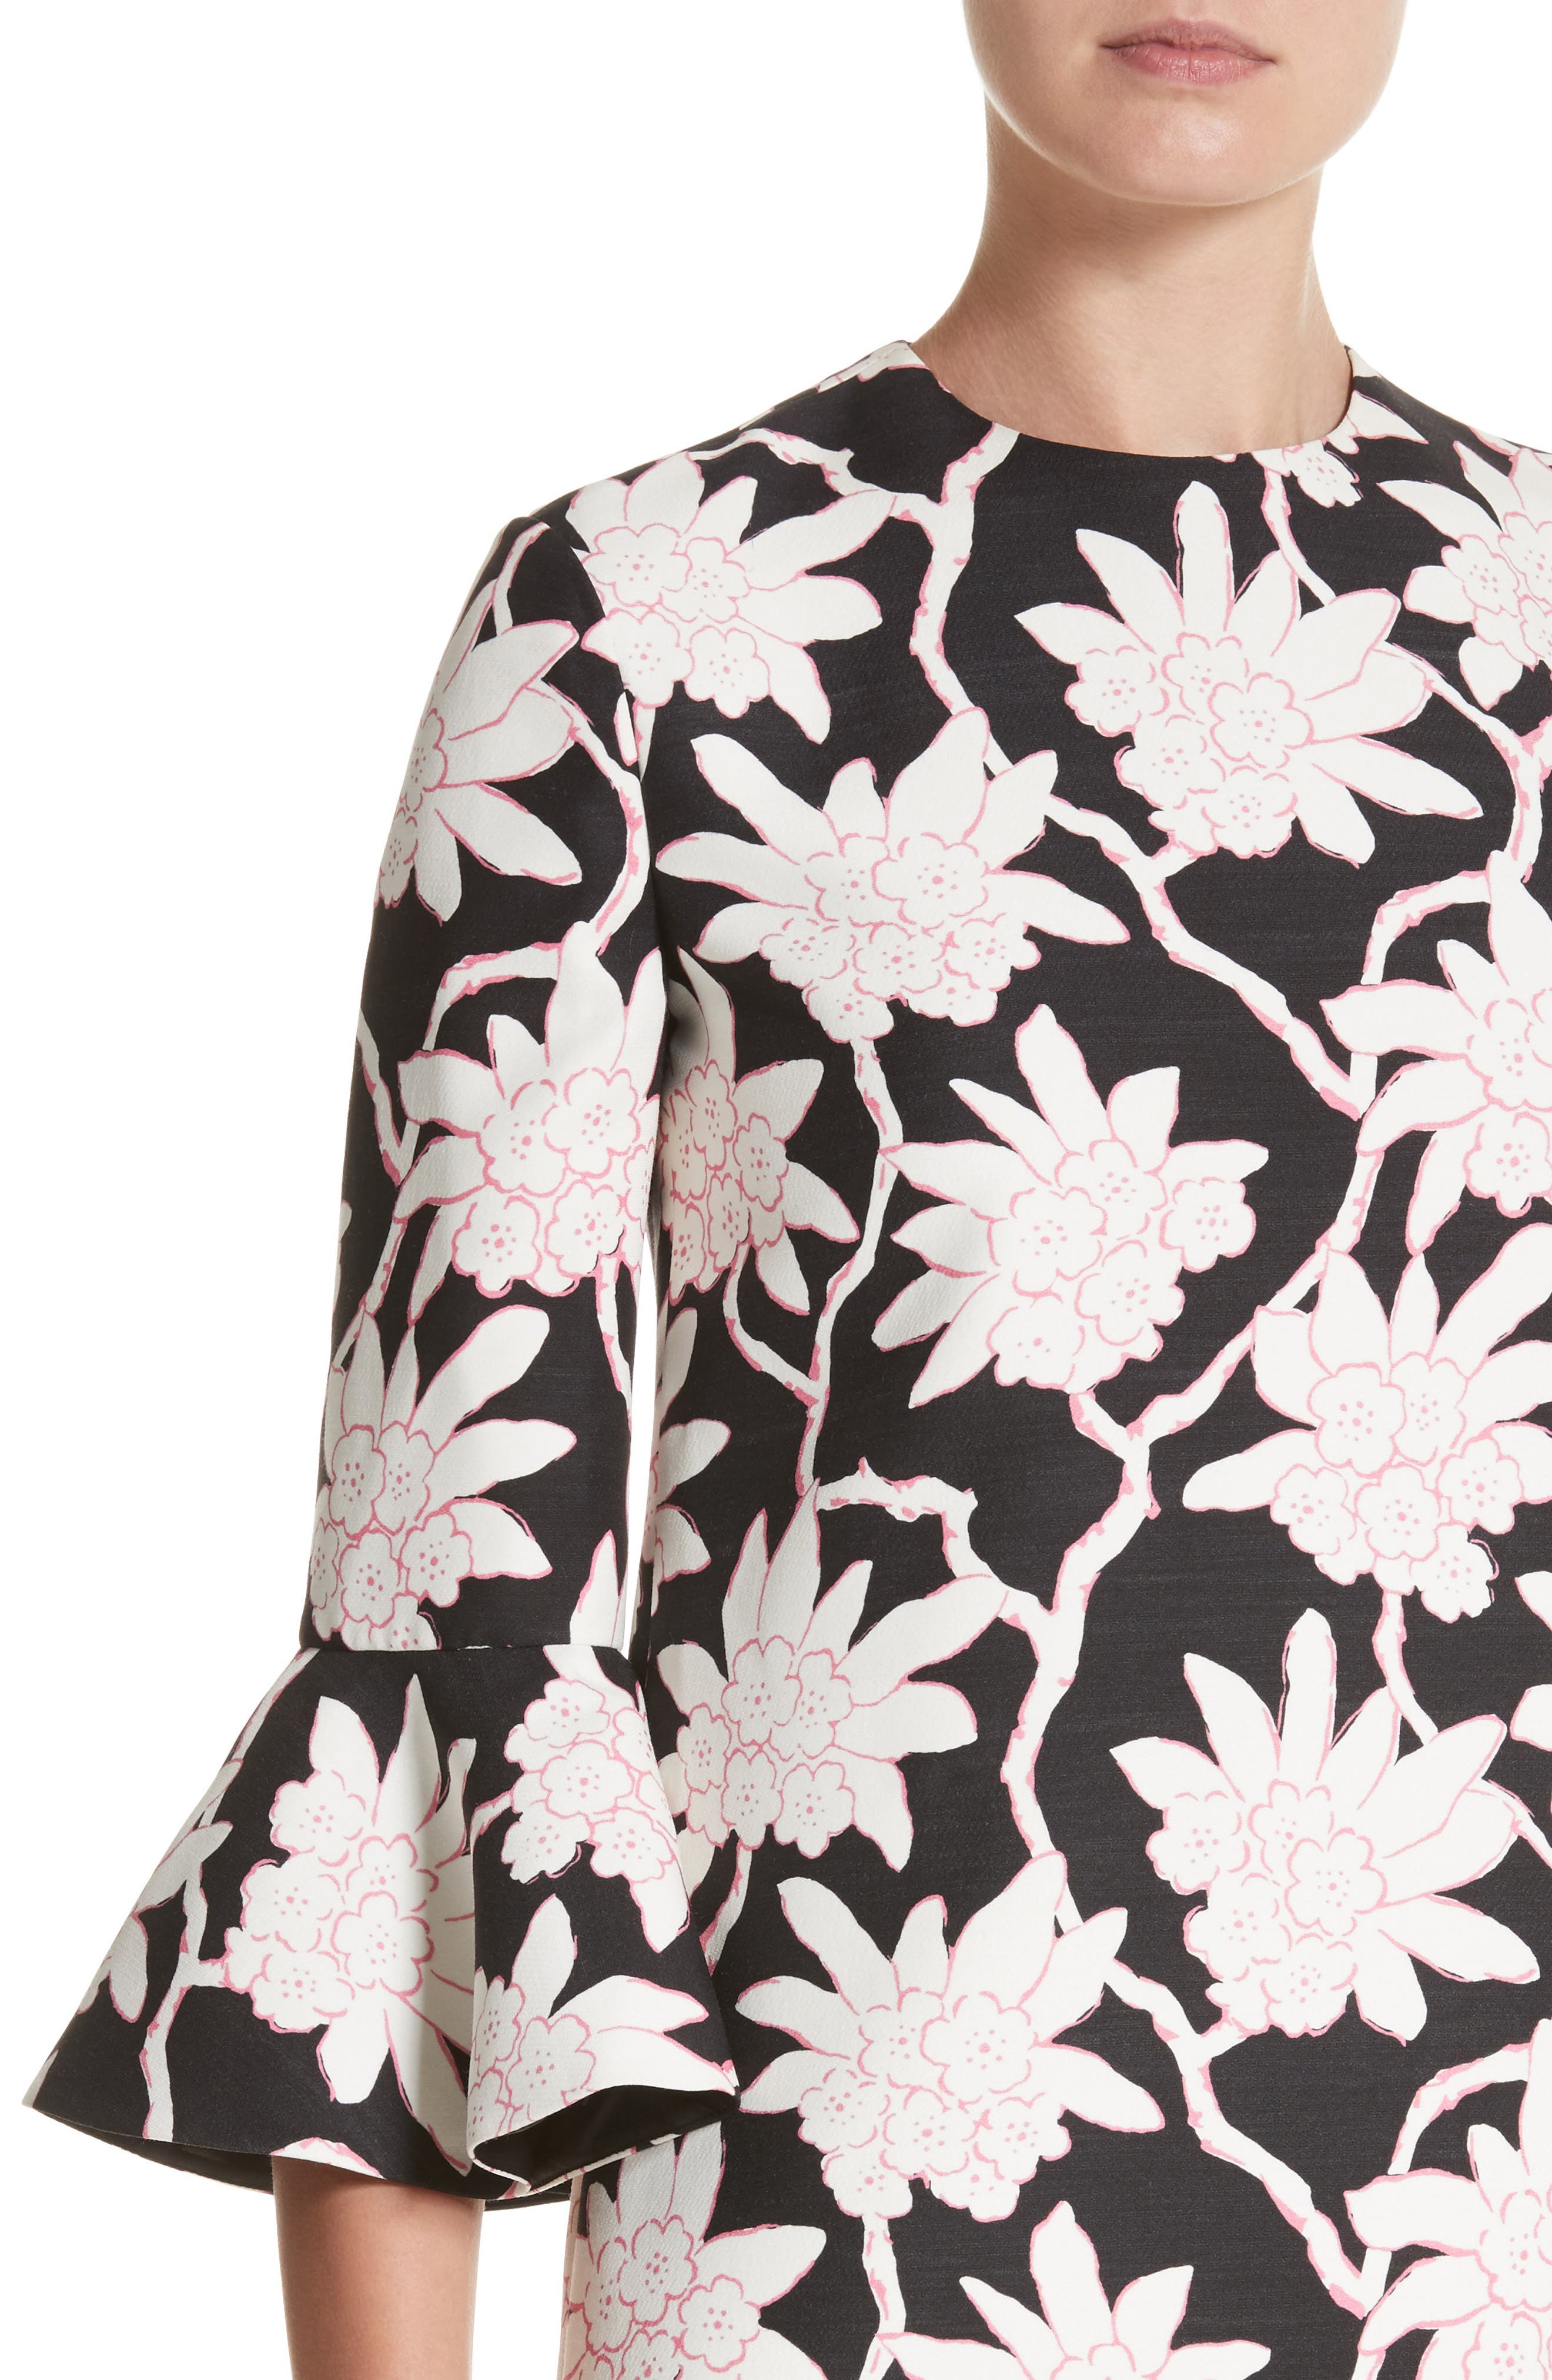 Rhododendron Print Wool & Silk Dress,                             Alternate thumbnail 4, color,                             Black